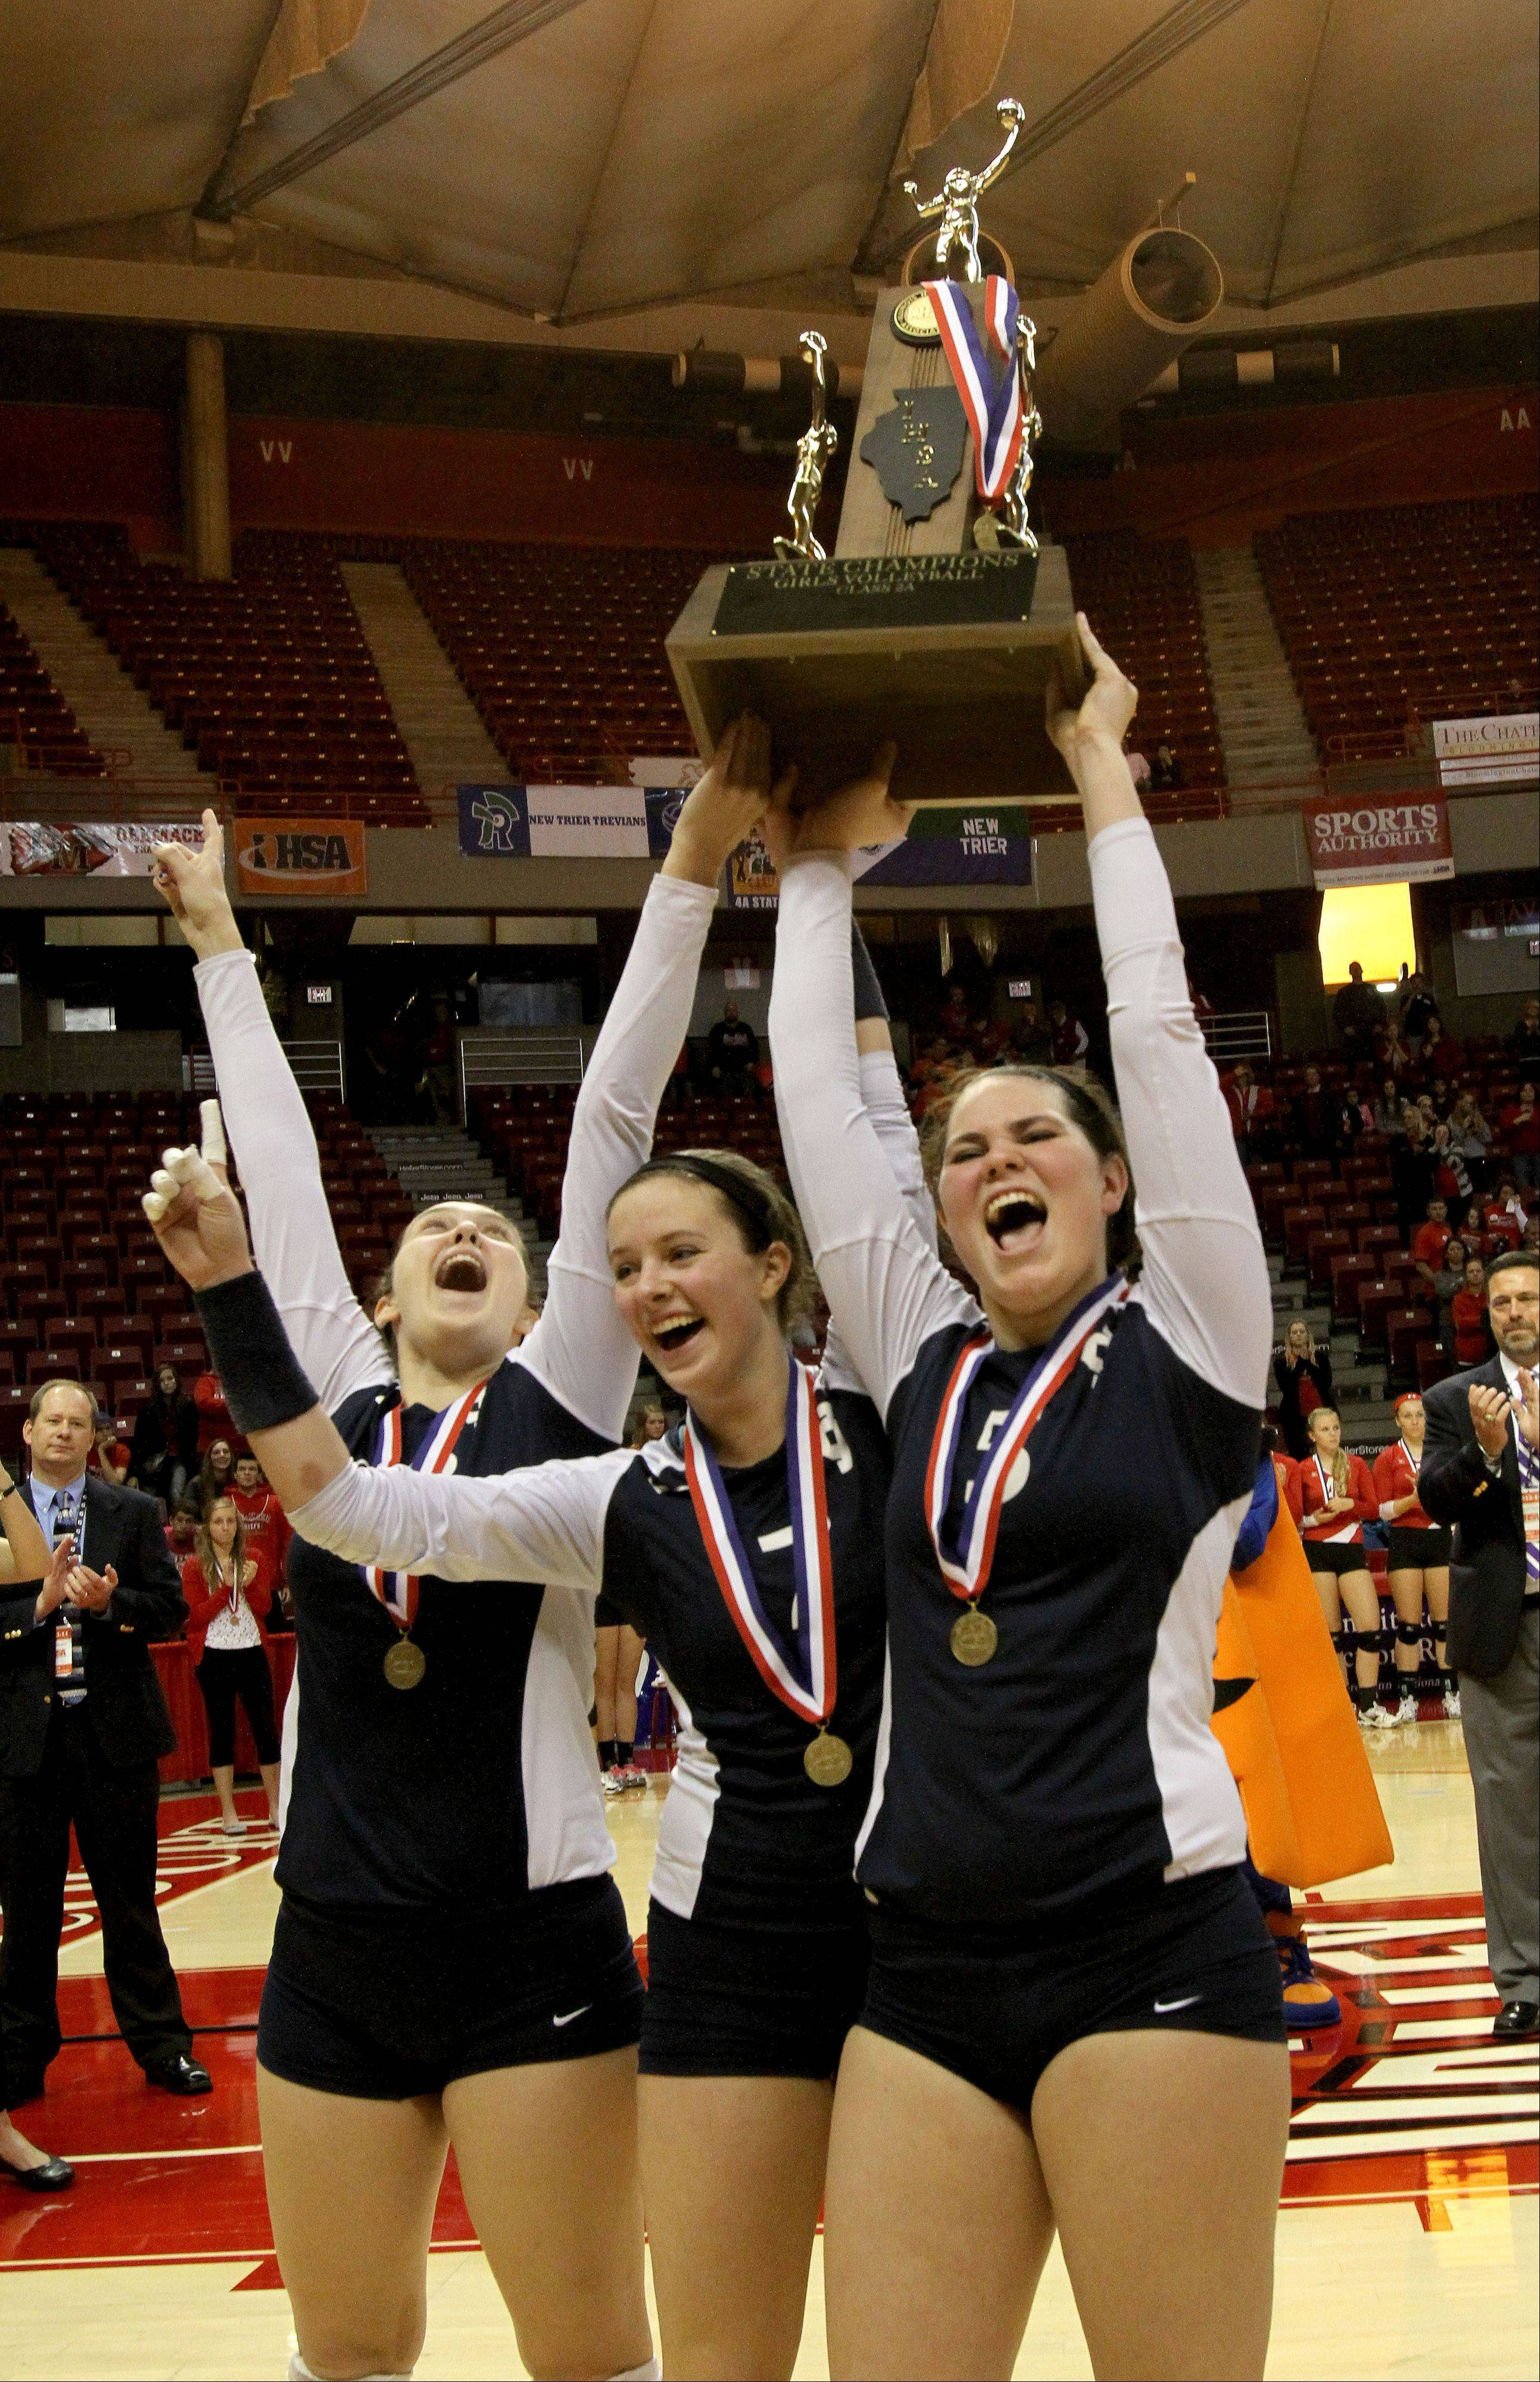 Left to right, Kimmy Martino, Delaney D'Amore and Rory Manion of IC Catholic hold up the trophy after beating Edwards County for the Class 2A championship in girls state volleyball on Saturday in Normal.